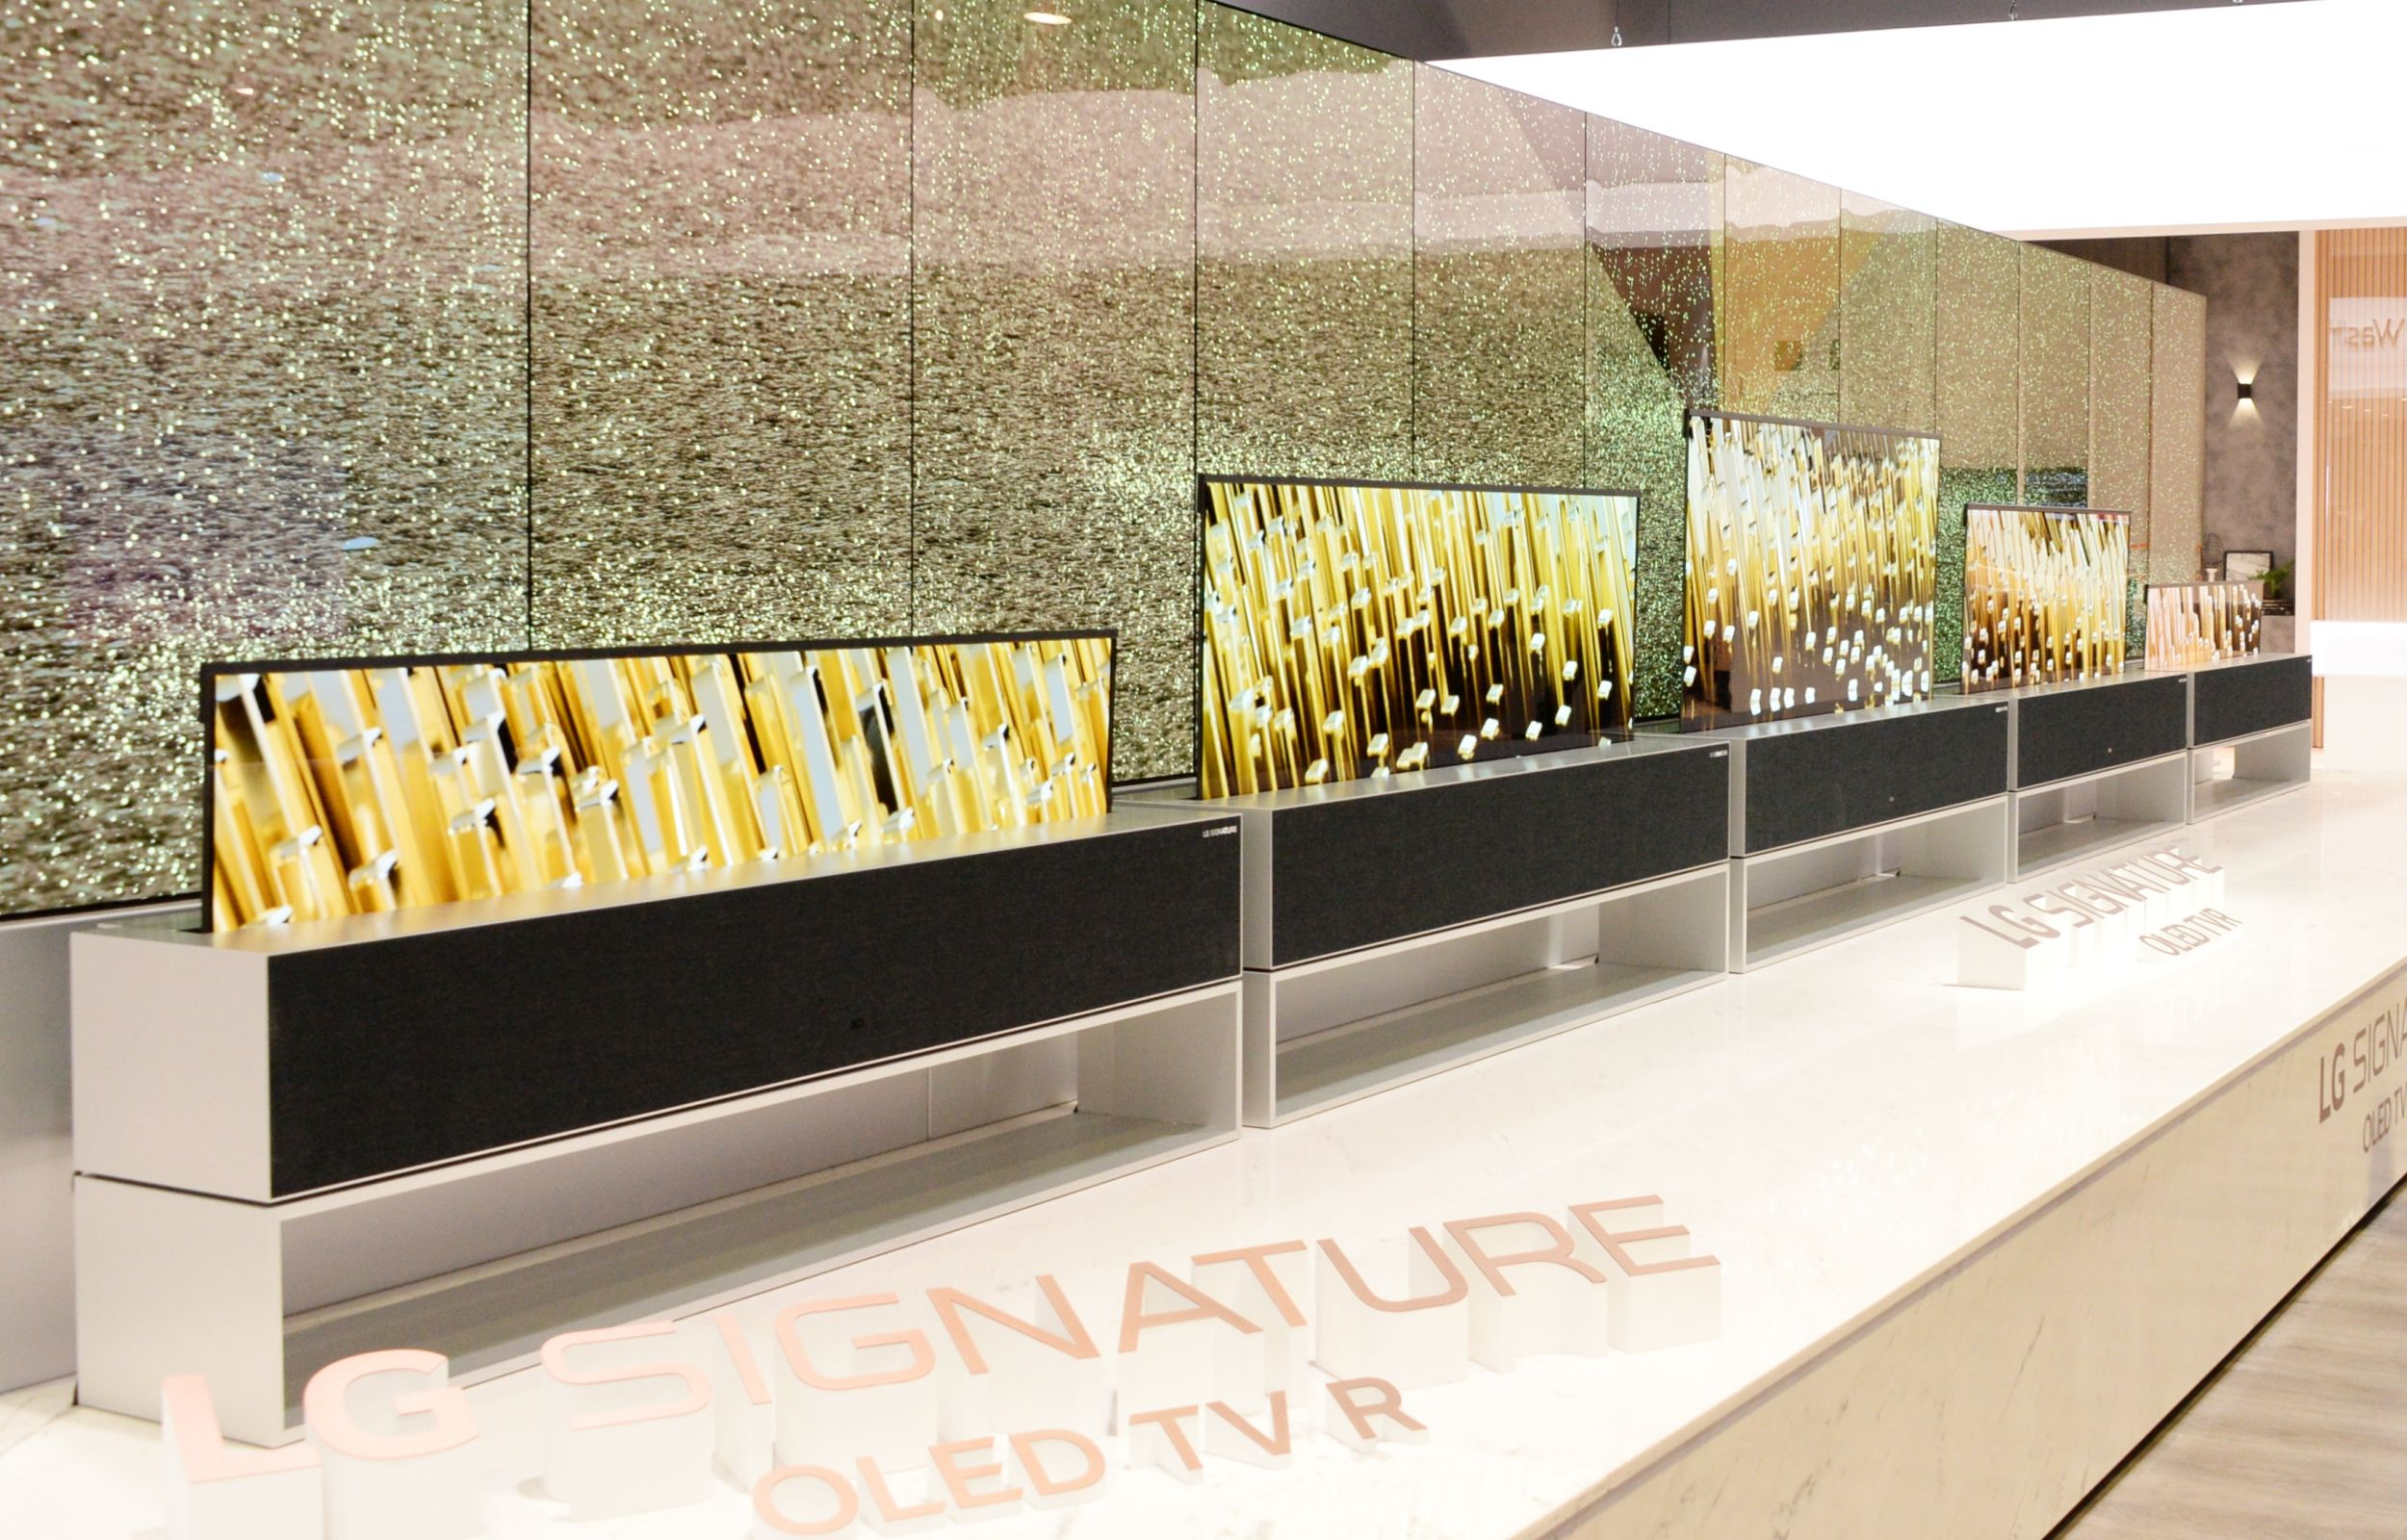 LG's rollable OLED TV is all kinds of awesome